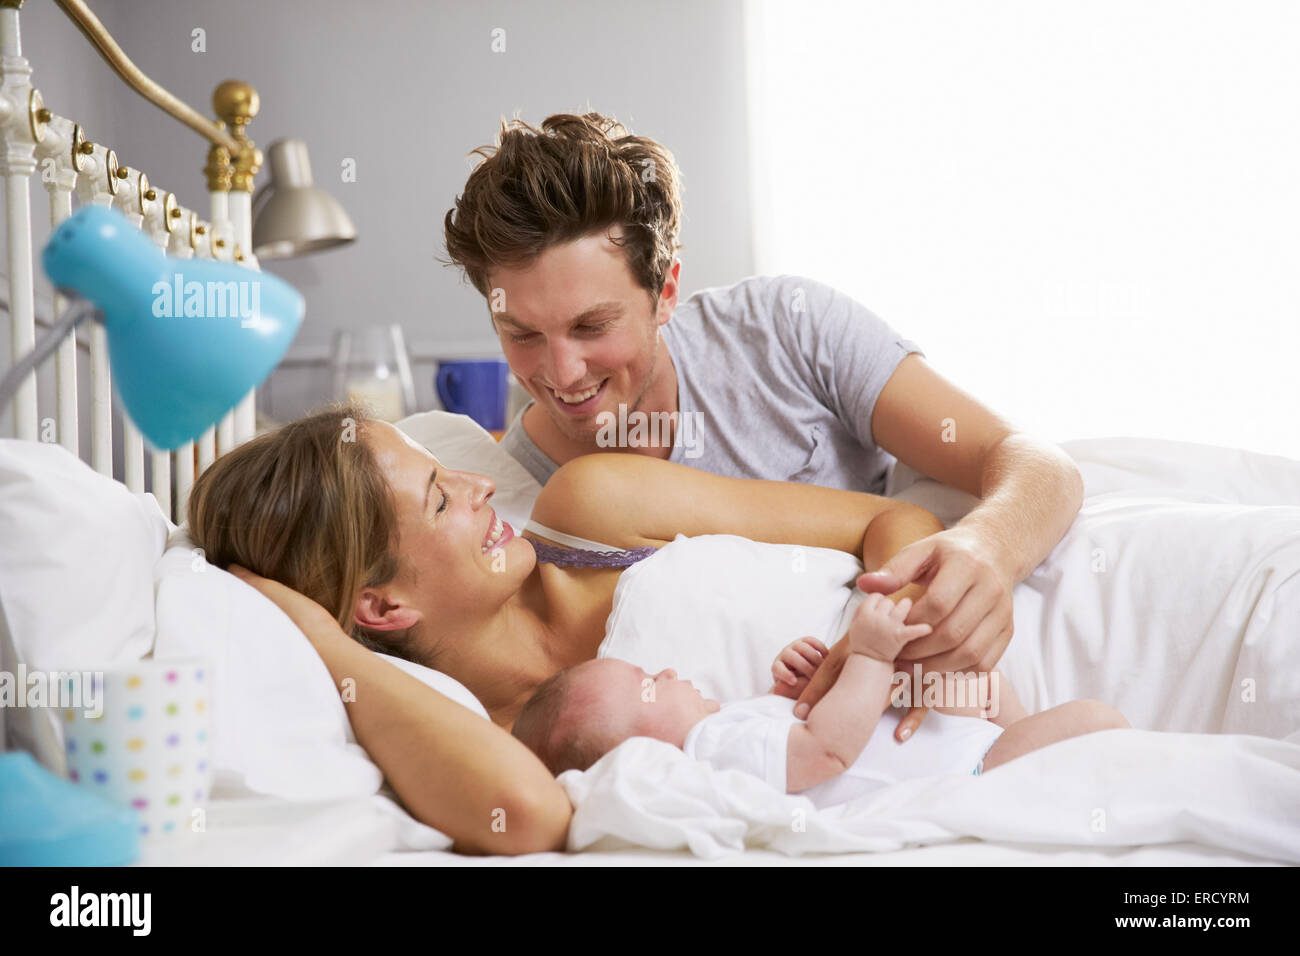 Family in bed holding sleeping newborn baby daughter